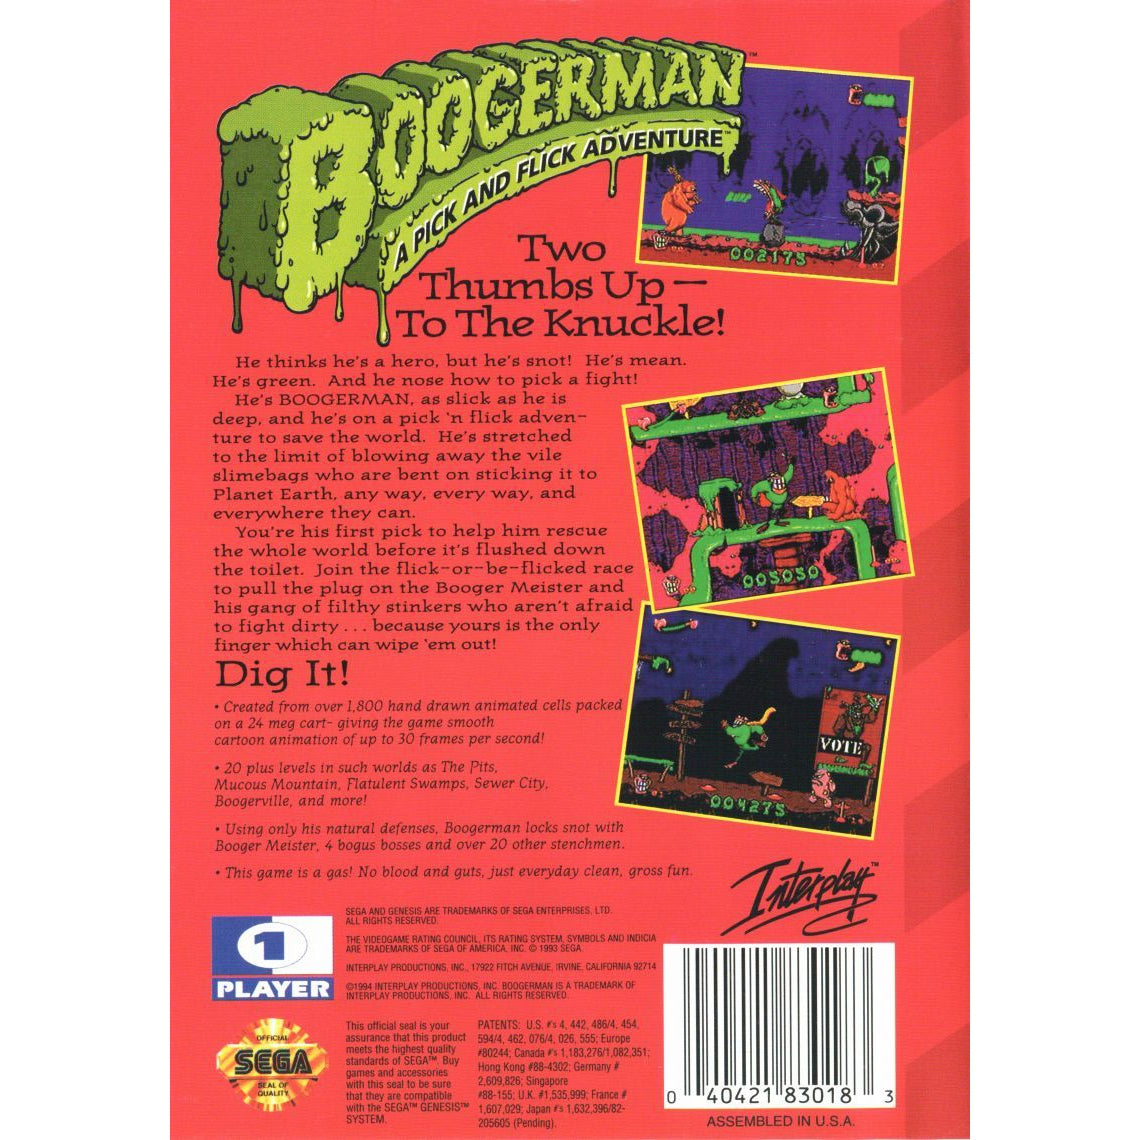 Boogerman: A Pick and Flick Adventure - Sega Genesis Game Complete - YourGamingShop.com - Buy, Sell, Trade Video Games Online. 120 Day Warranty. Satisfaction Guaranteed.